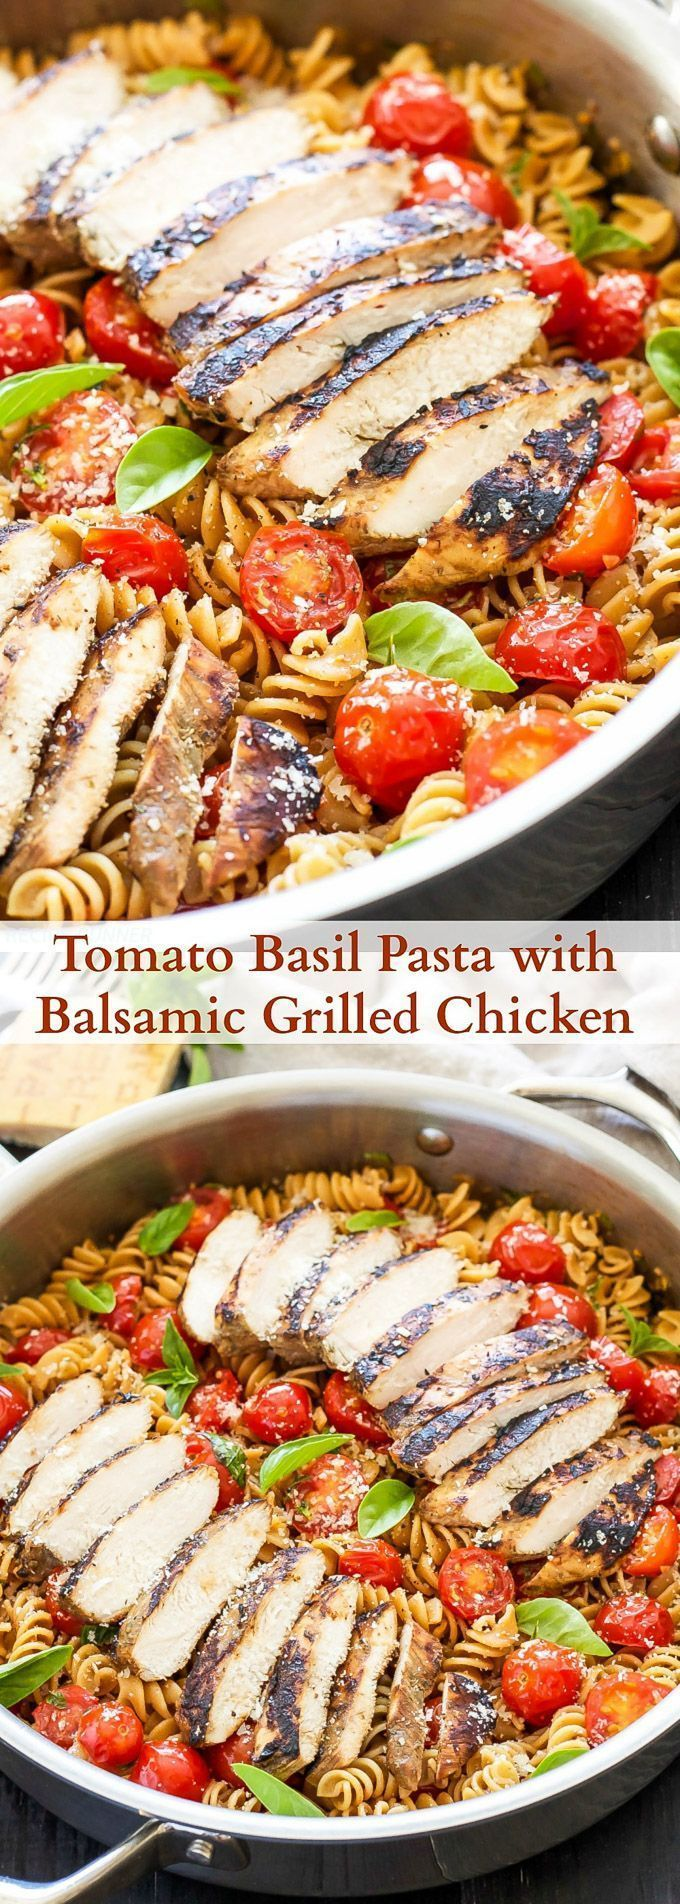 Tomato Basil Pasta with Balsamic Grilled Chicken | A lighter pasta dish full of…